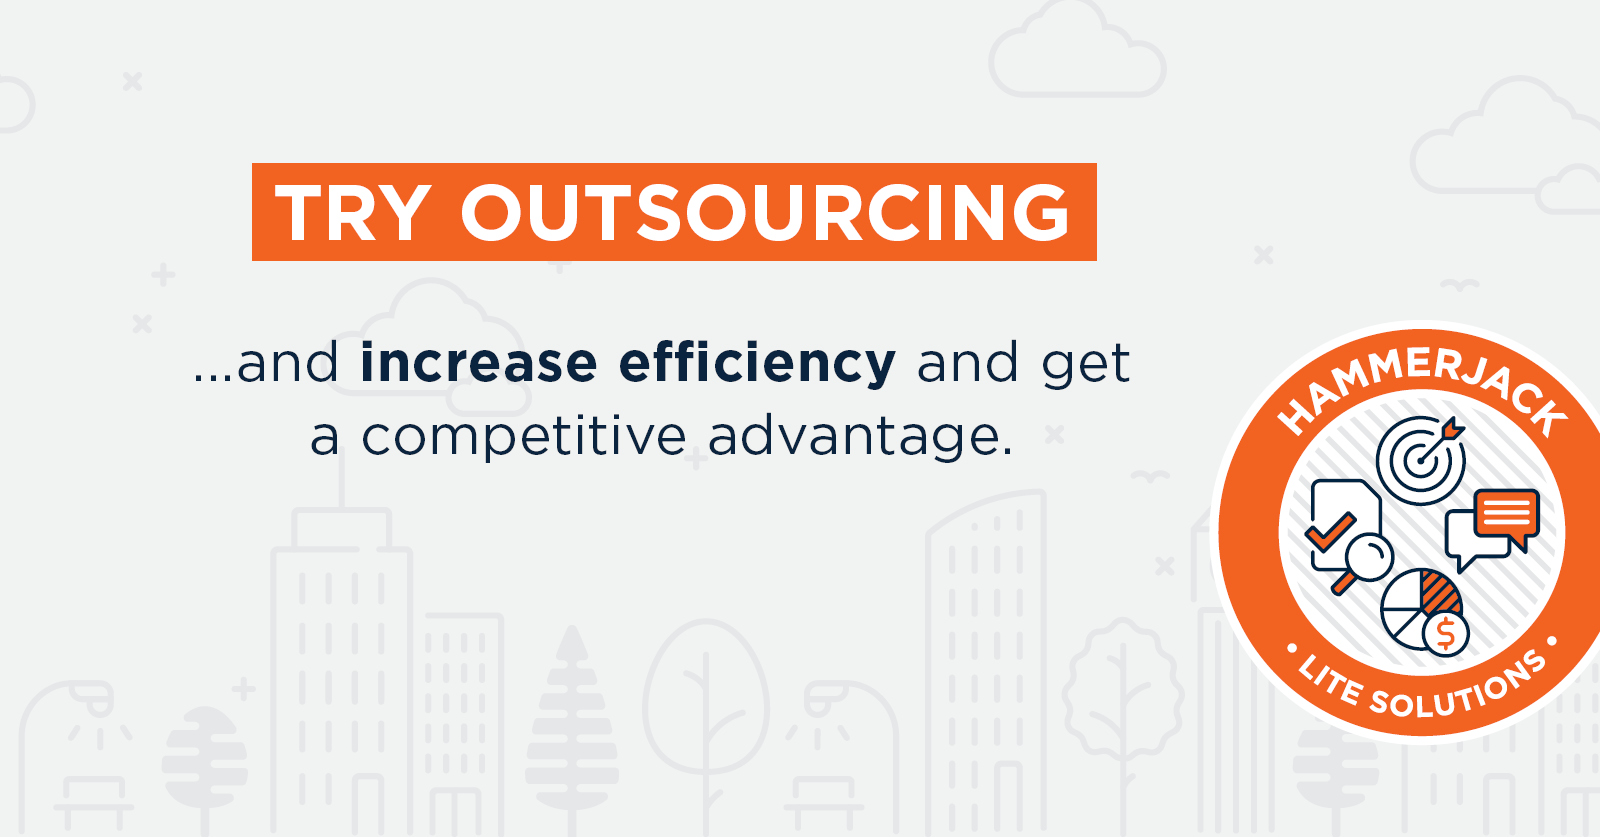 Try-outsourcing-2.jpg